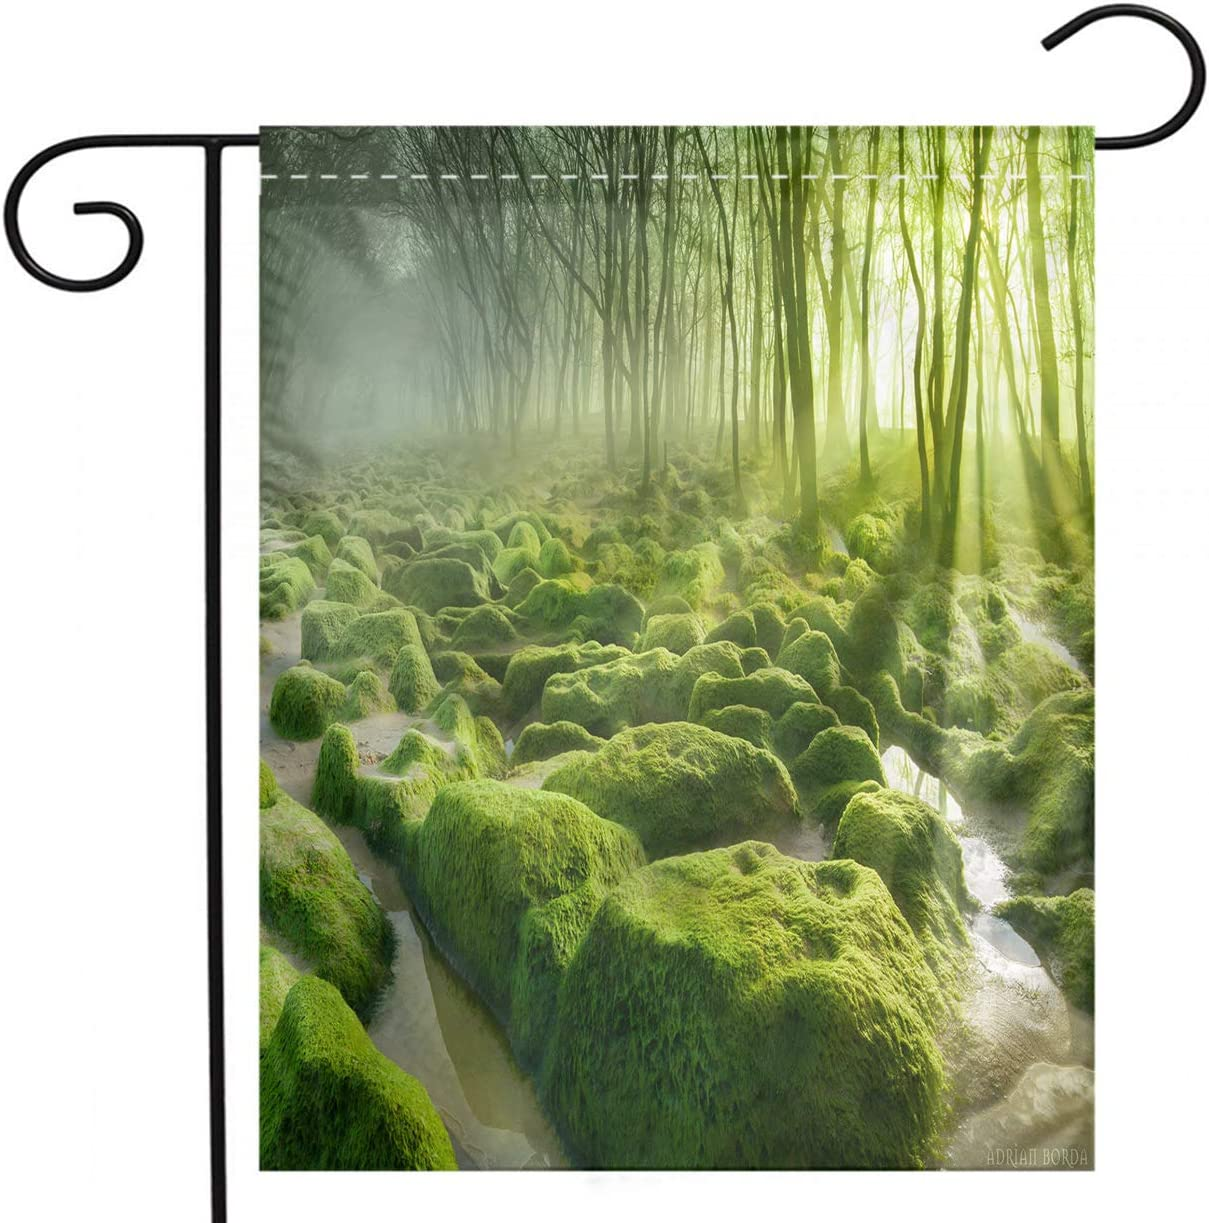 BEIVIVI Summer Garden Flag, Creative Home Garden Flag,Moss Valley with Rocks and Forests in Summer,Garden Flag for Party Holiday Home Garden Decor,Linen 28x40inch